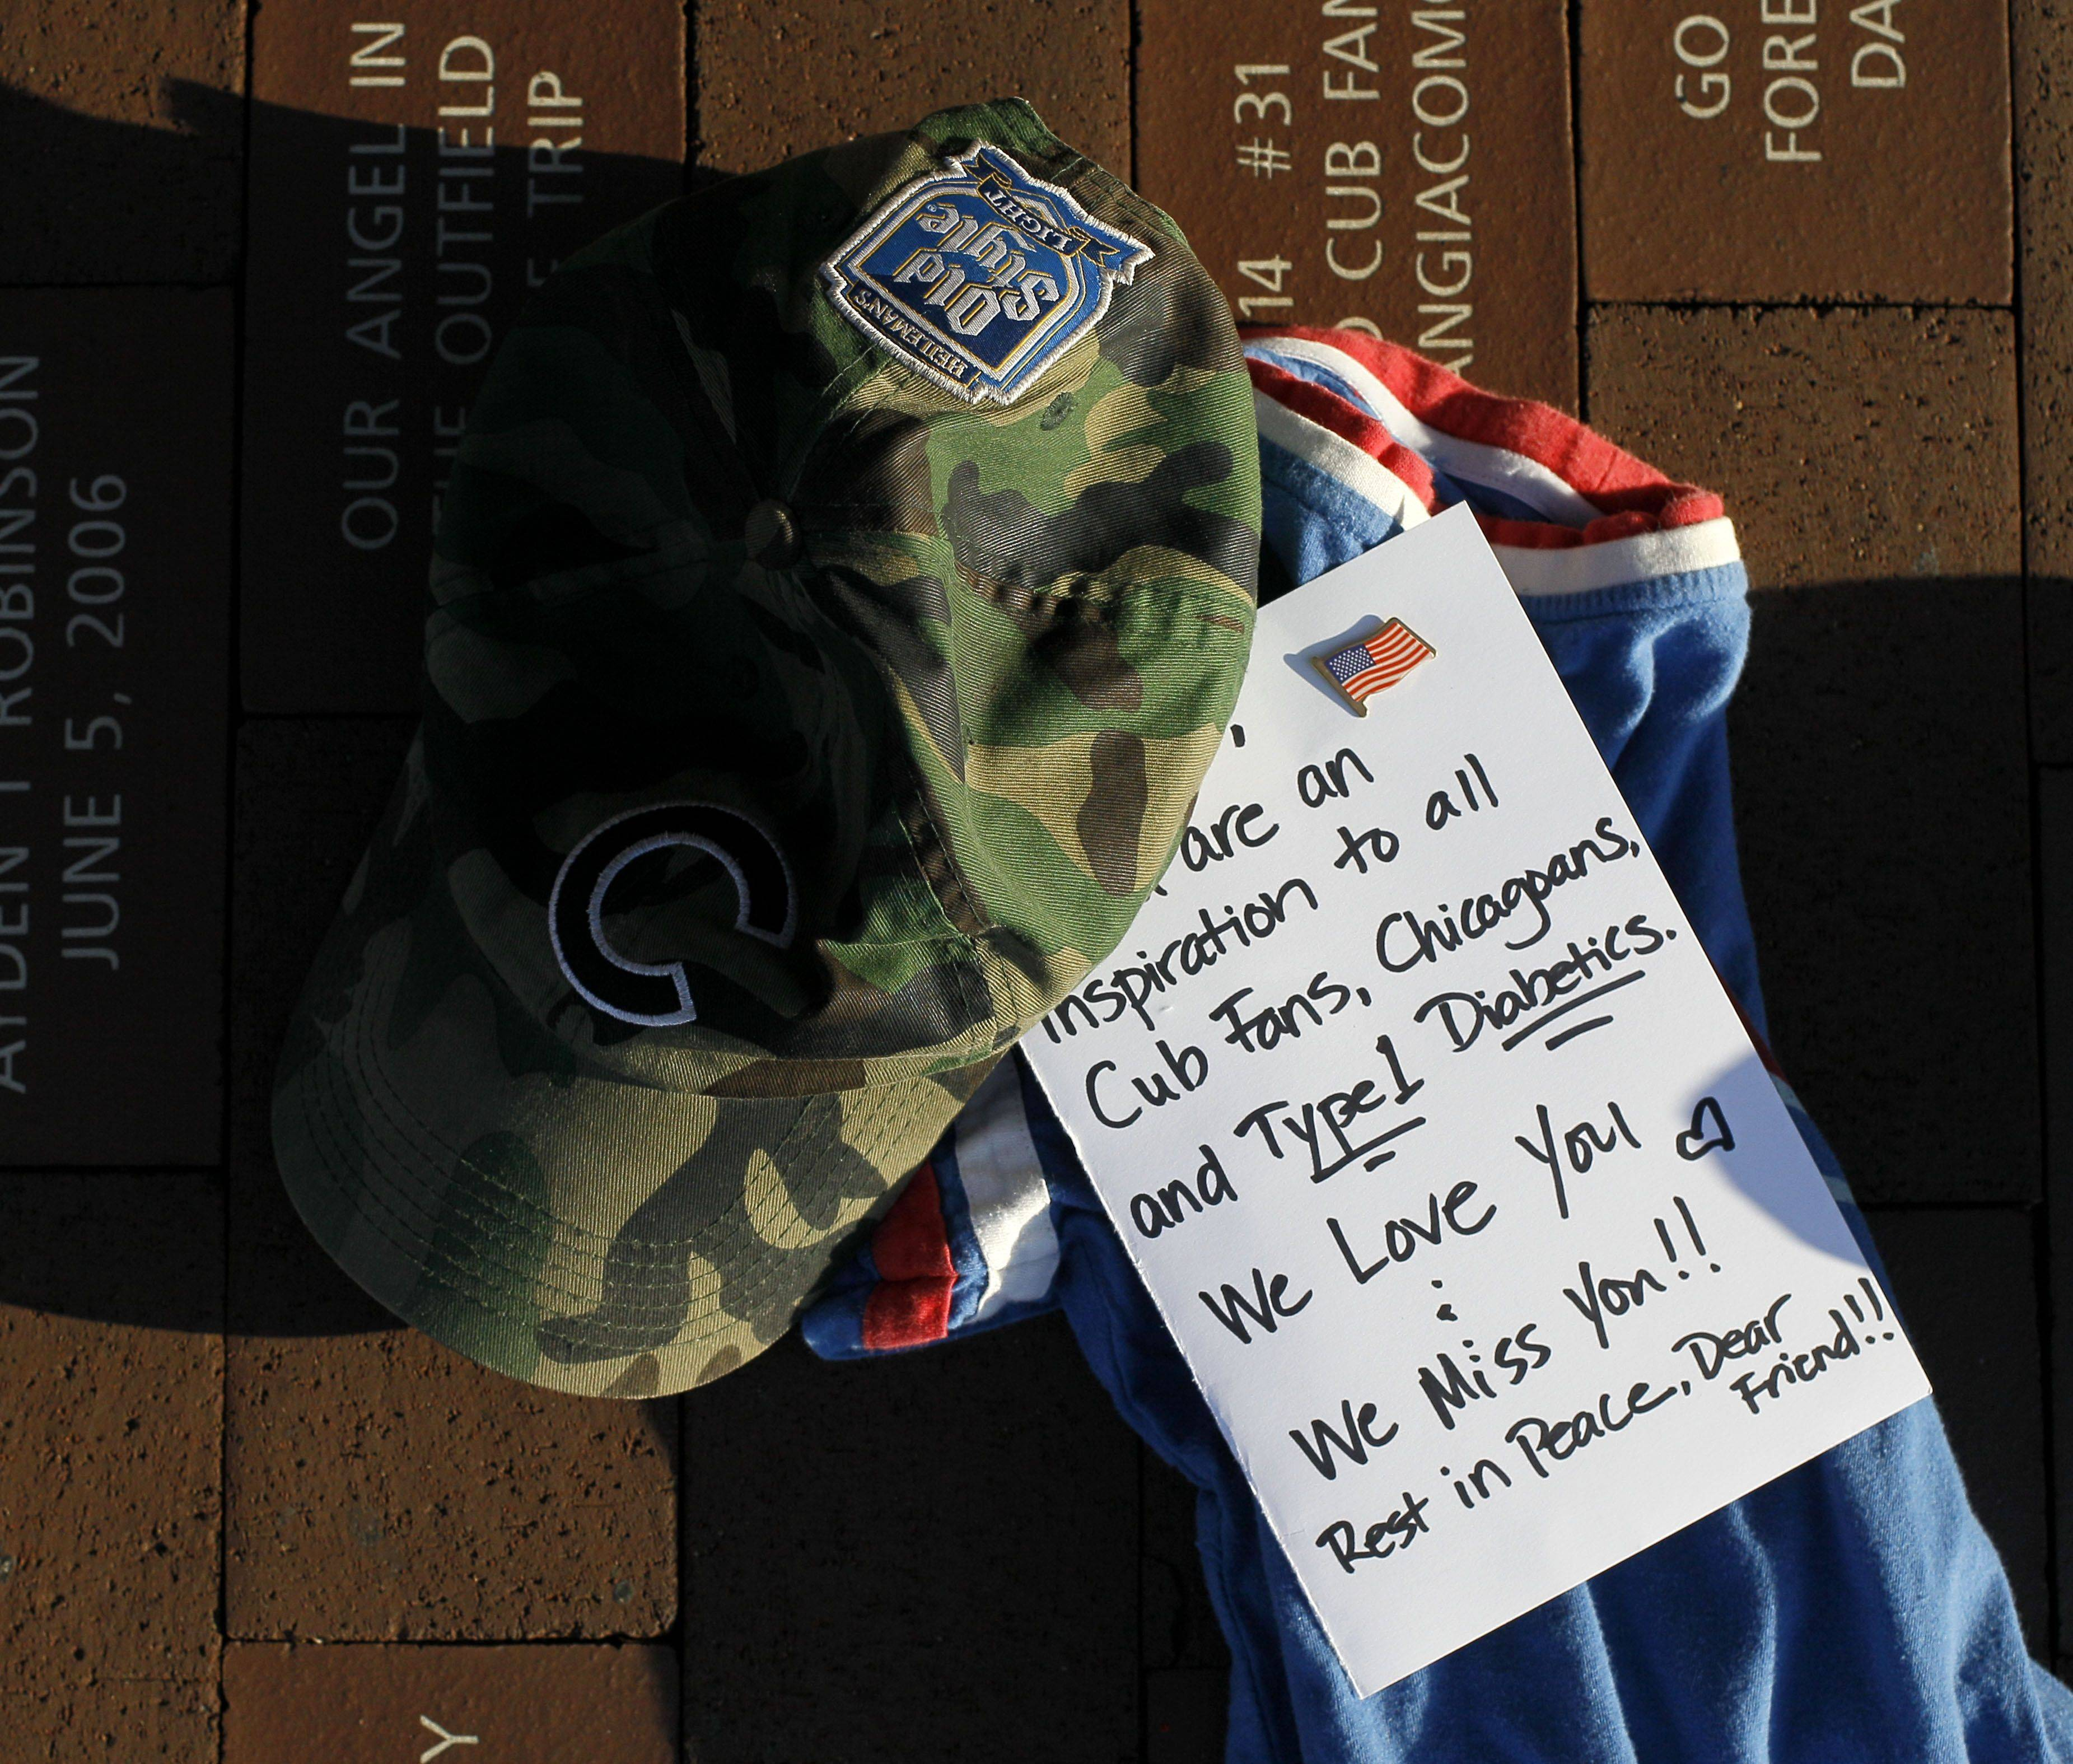 A memorial to former Chicago Cubs' Ron Santo, one of the greatest players in Cubs history, is shown outside Wrigley Field, after news of Santo's death was announced.